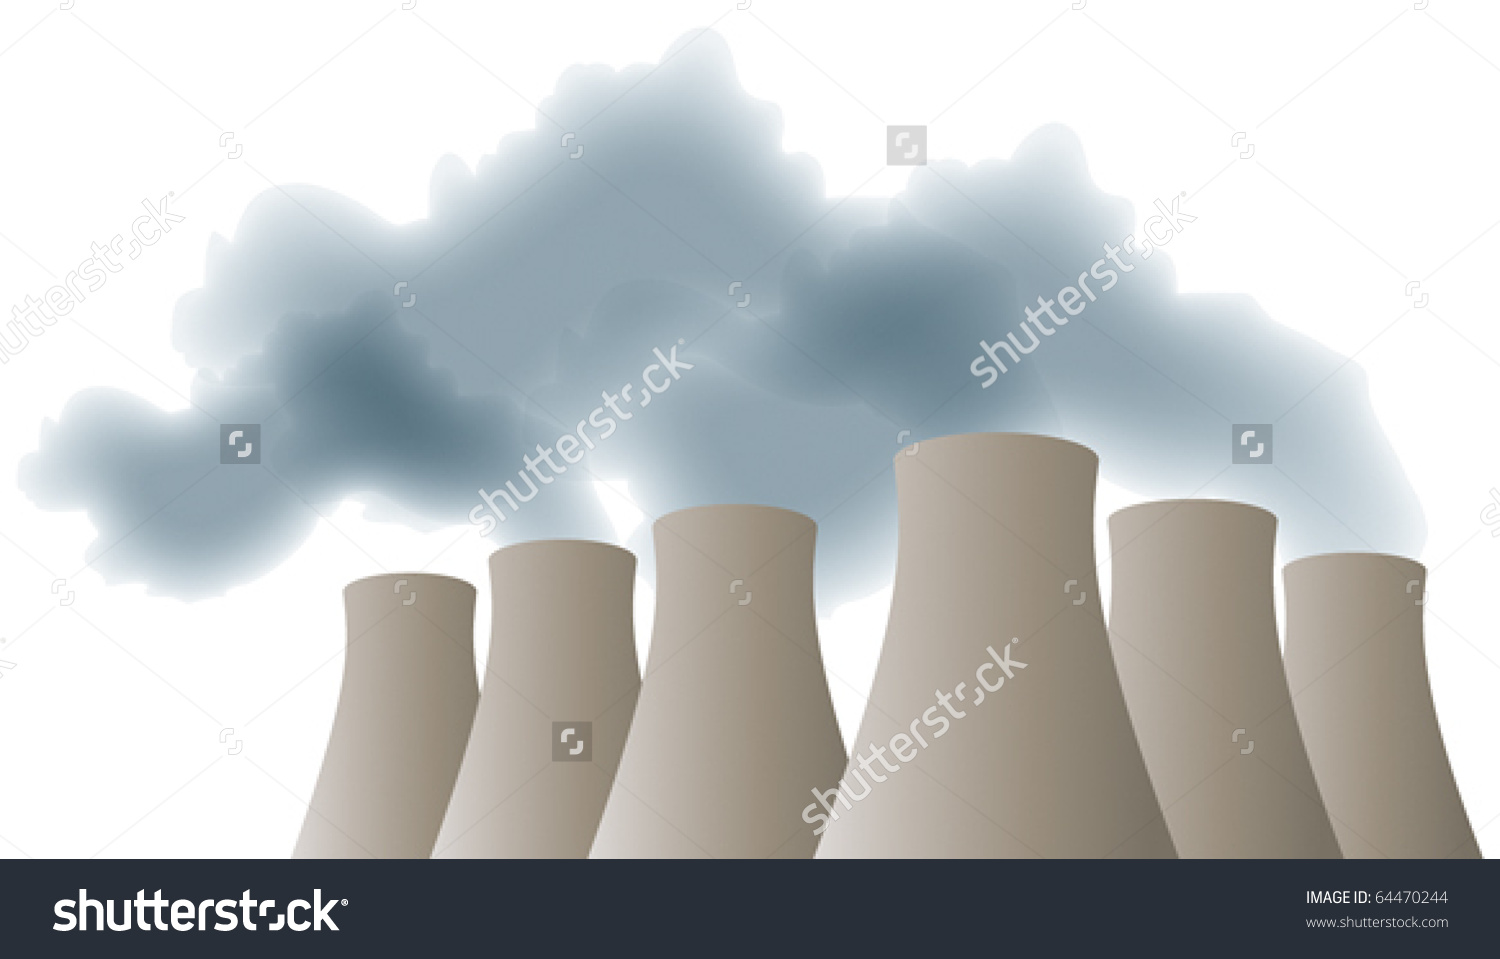 Cooling Towers With Smoke, Steam Stock Vector Illustration.